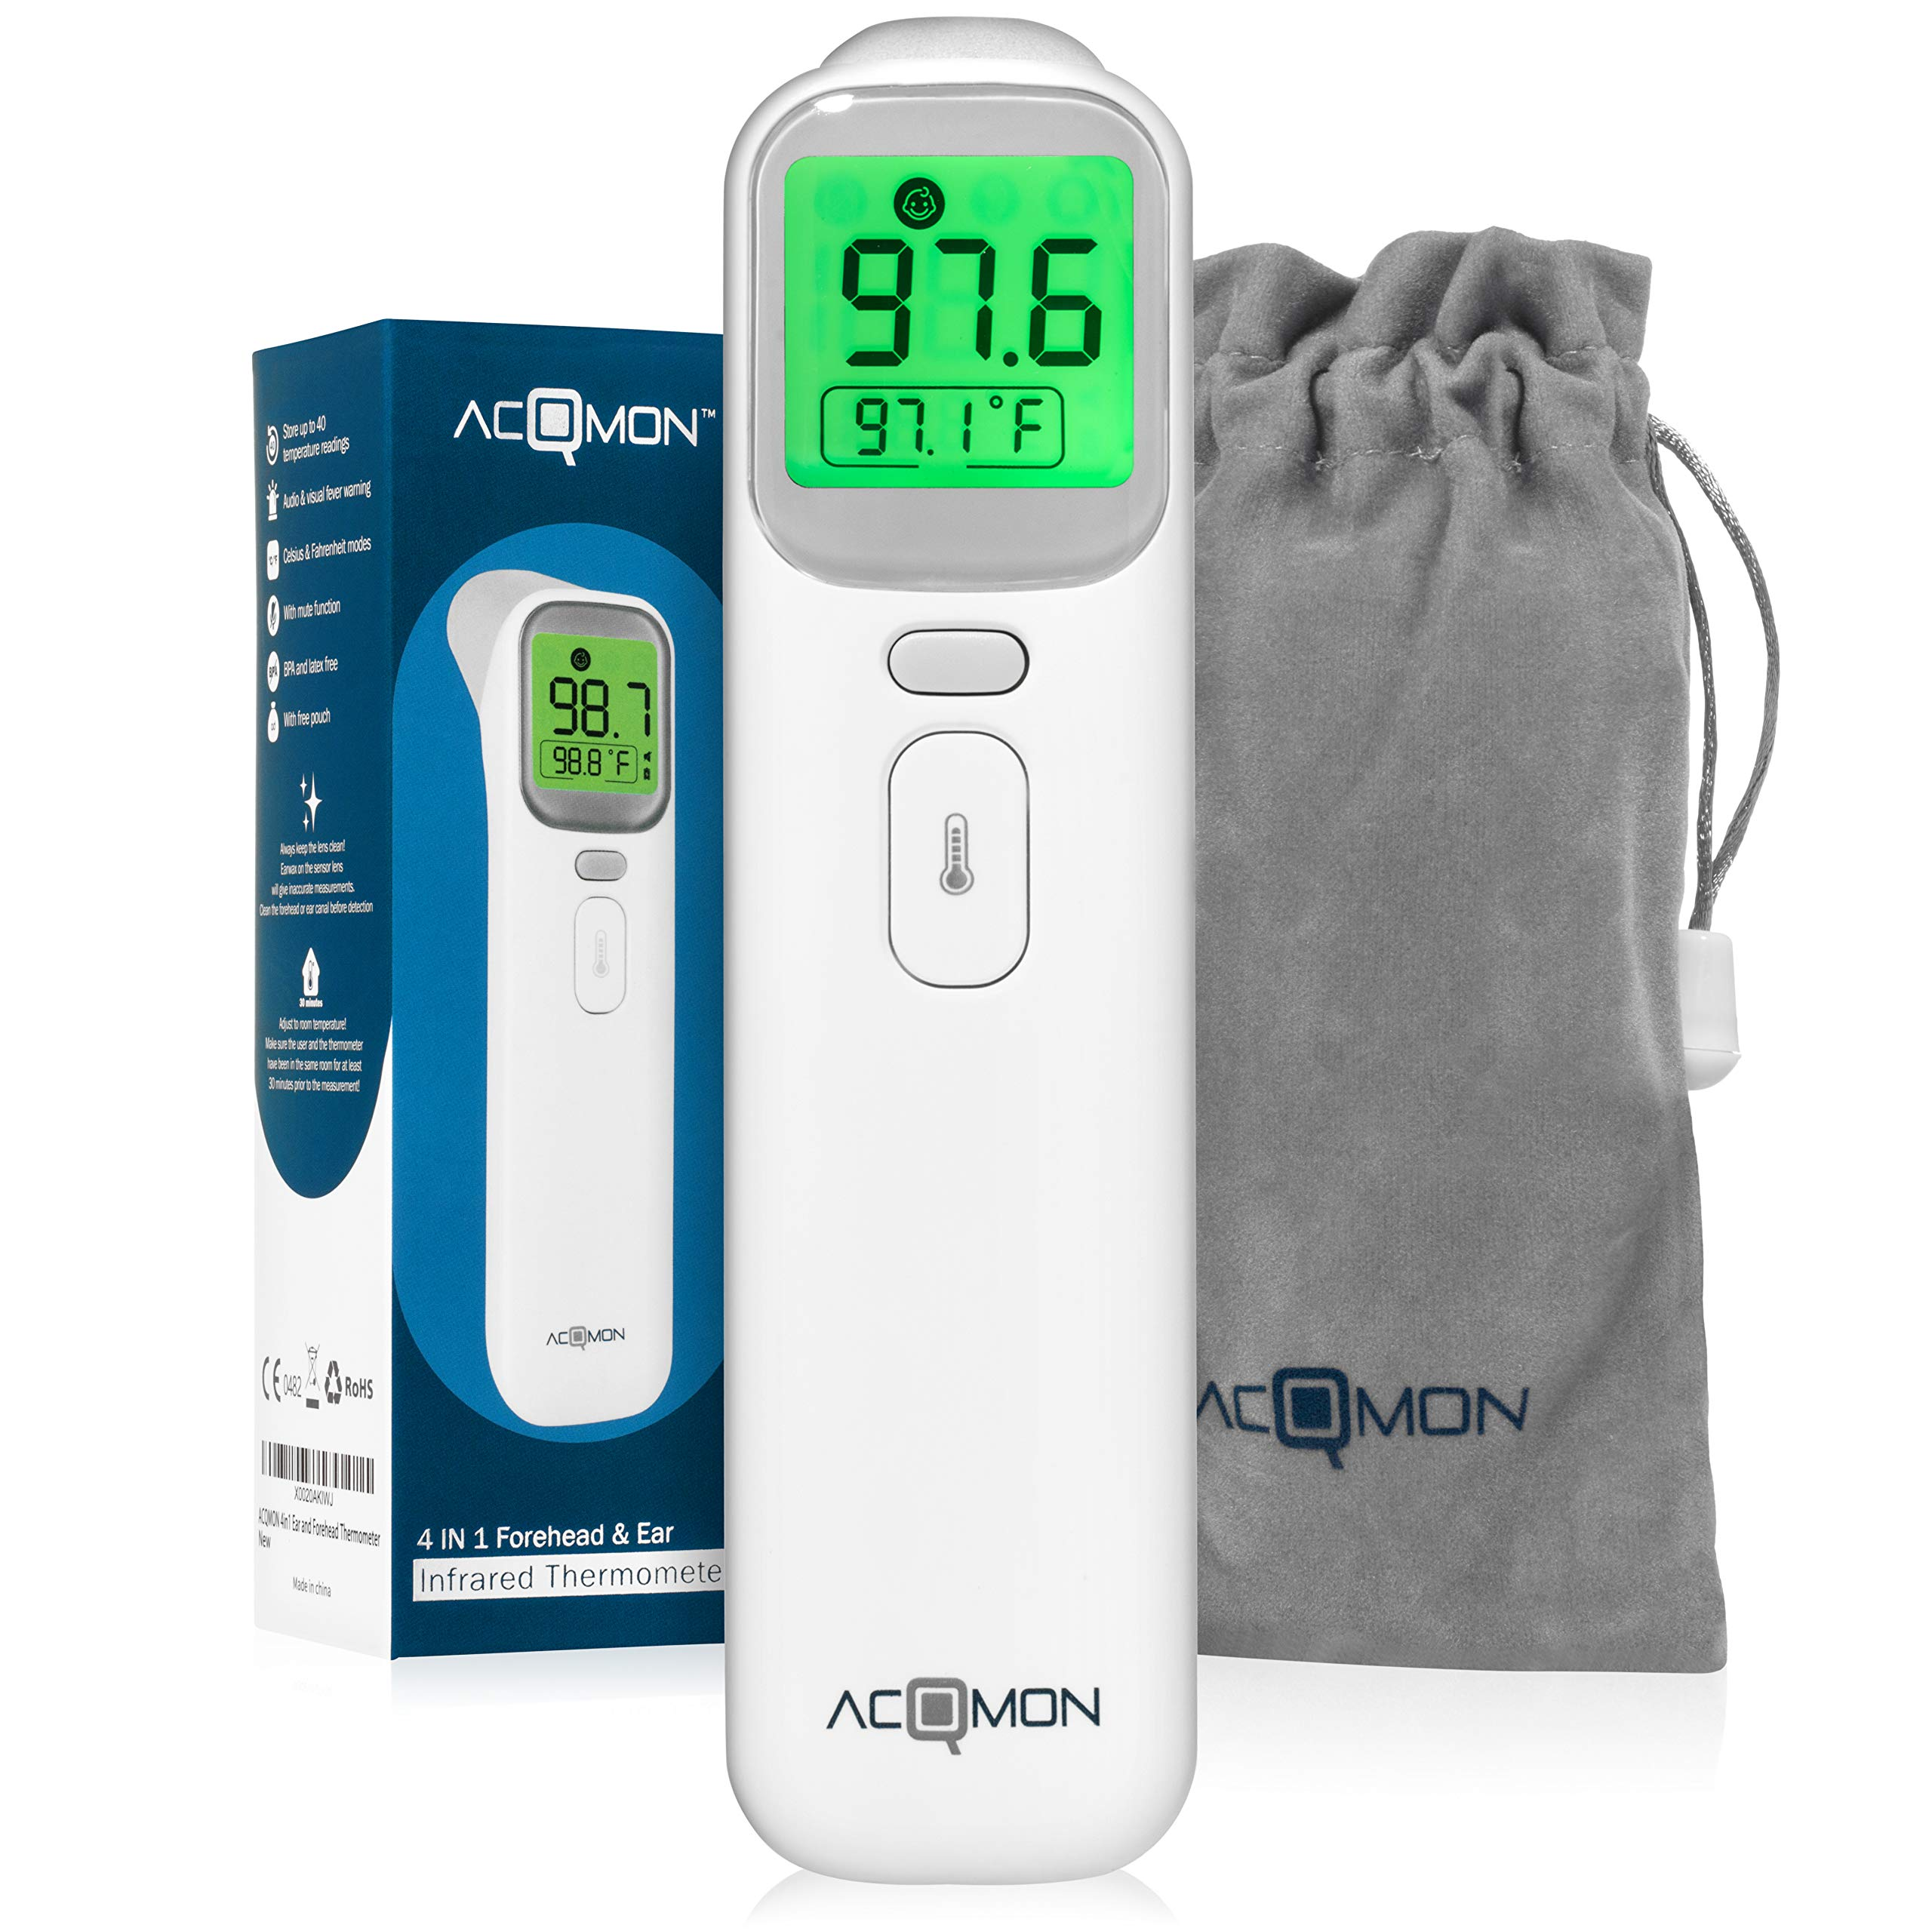 ACQMON Ear and Forehead Thermometer - Medical Digital Infrared Temporal Monitor for Fever, Instant Accurate Reading for Baby Kids and Adults by ACQMON